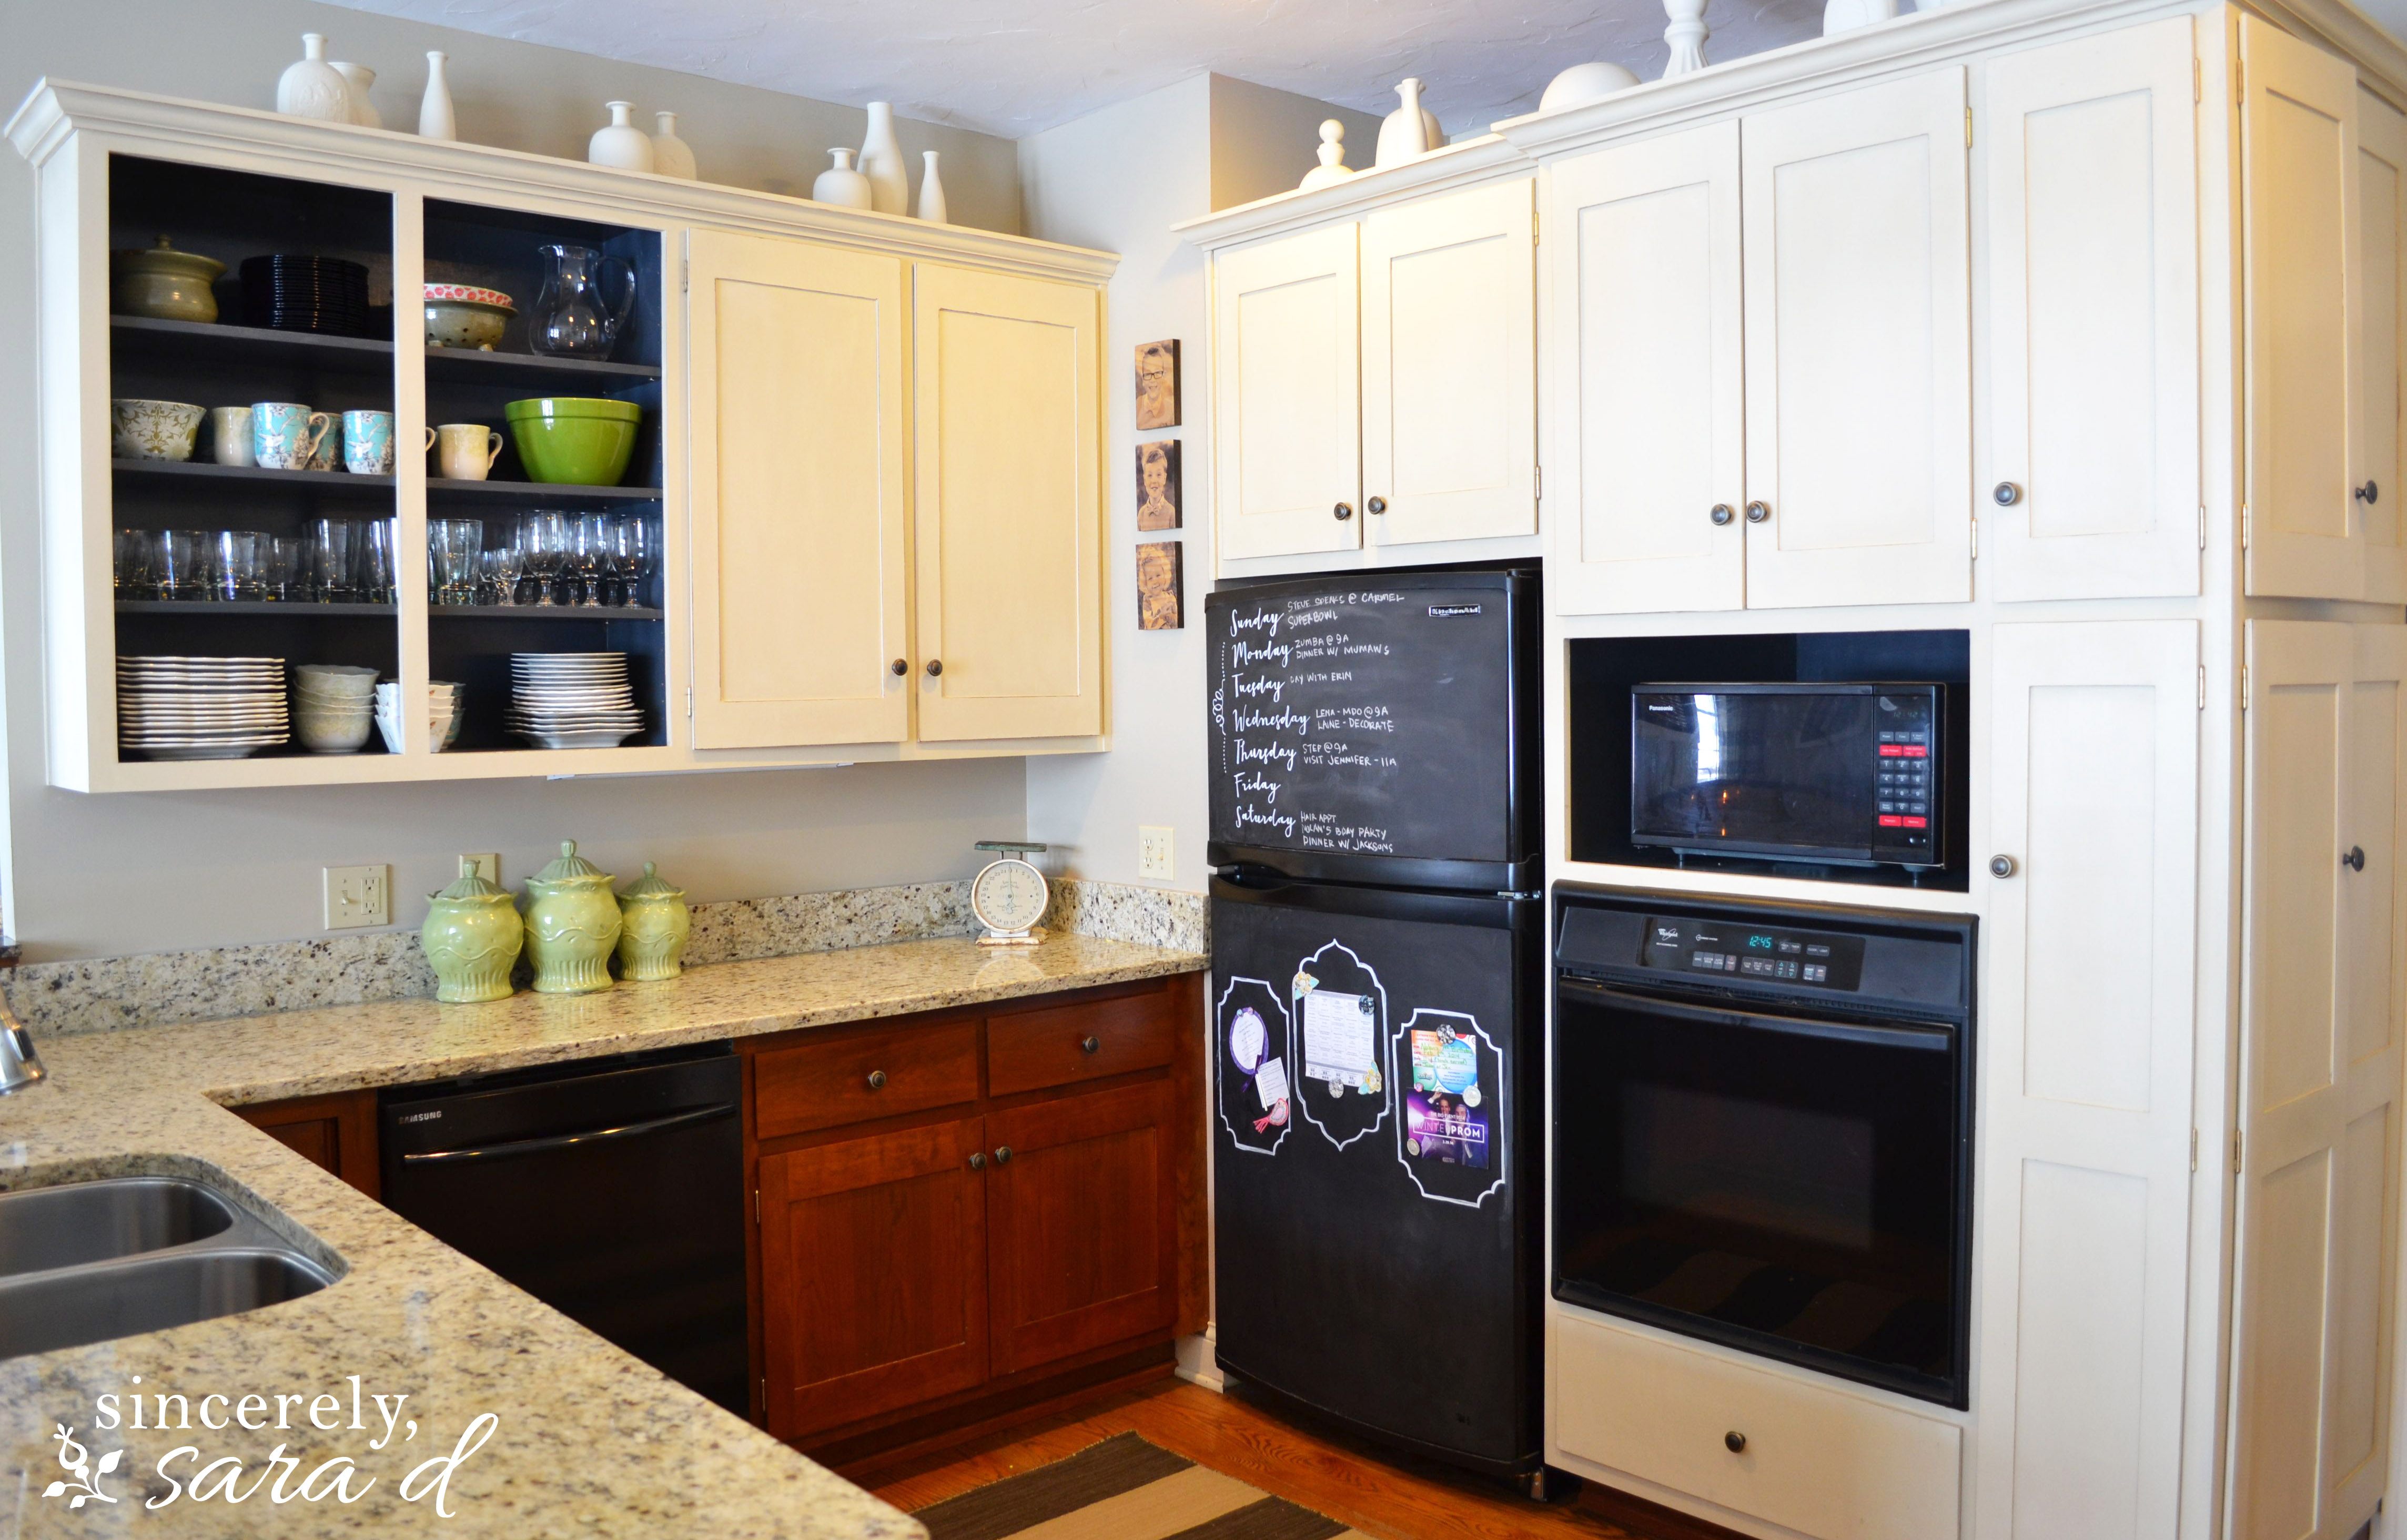 can i paint my kitchen cabinets used equipment miami painting with chalk sincerely sara d